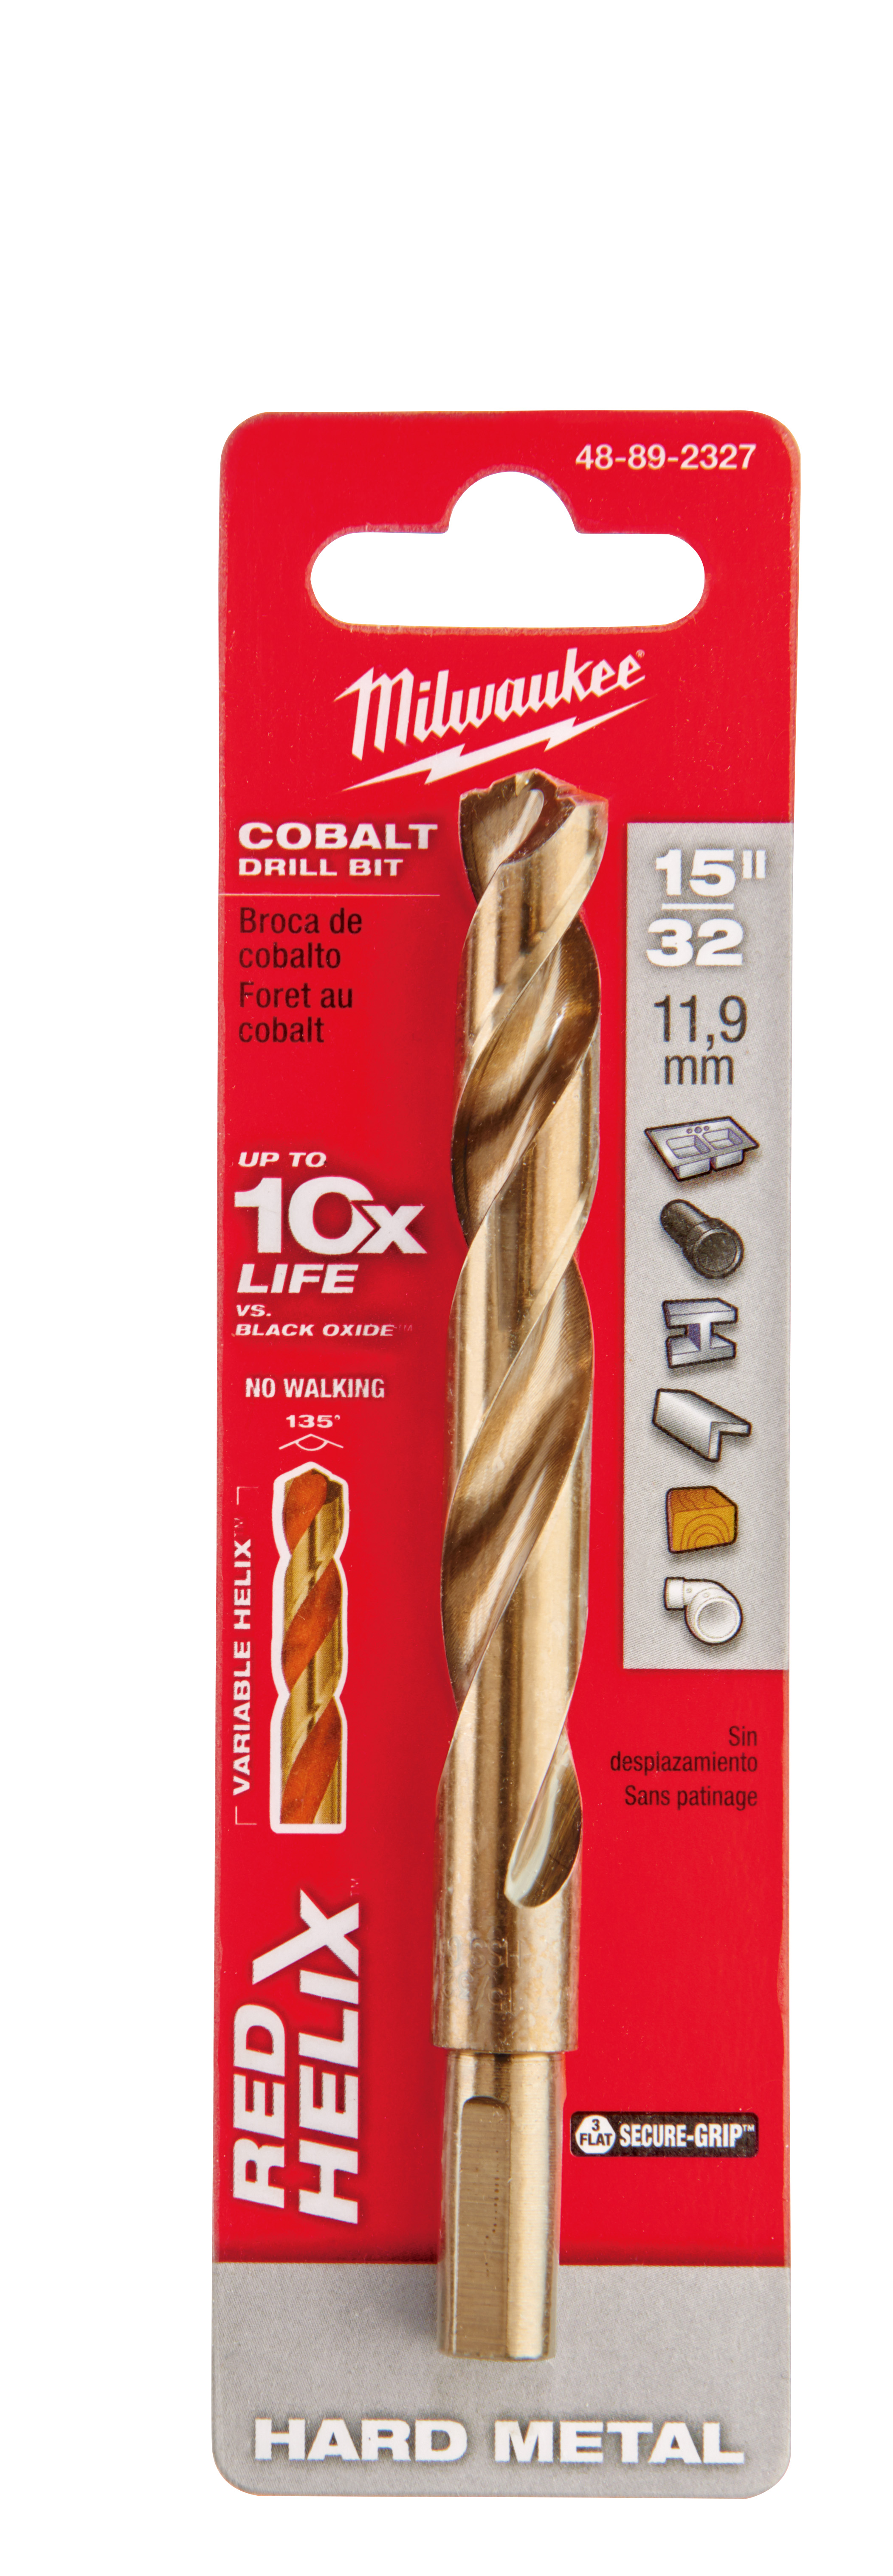 Milwaukee® 48-89-2327 RED HELIX™ Jobber Length Twist Drill Bit, 15/32 in Drill - Fraction, 0.4688 in Drill - Decimal Inch, 135 deg Point, High Speed Cobalt, Uncoated